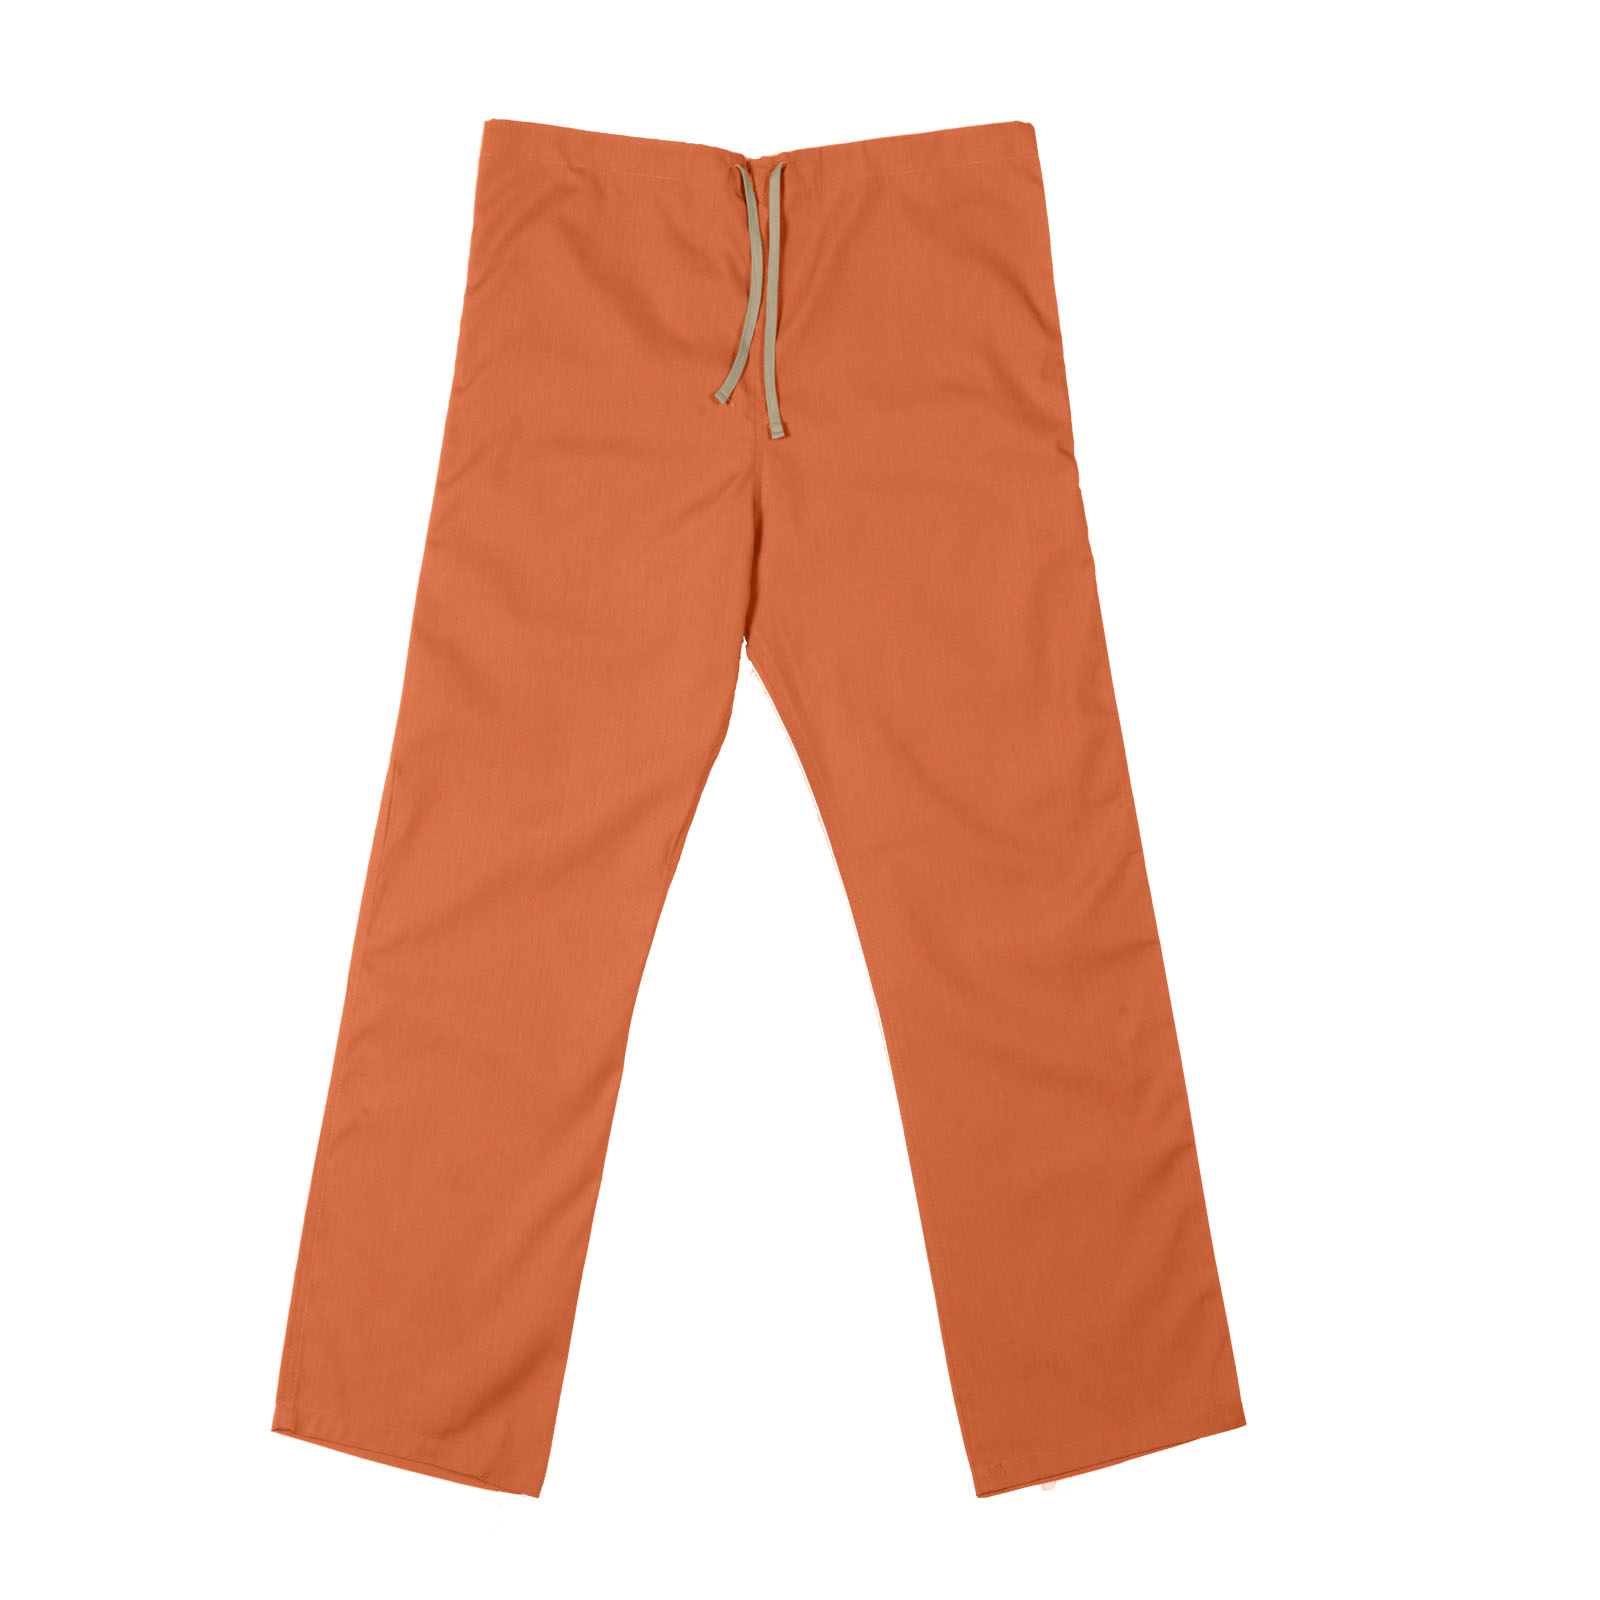 SP60U Orange - 65/35 Poly/Cotton Poplin Scrub Pant